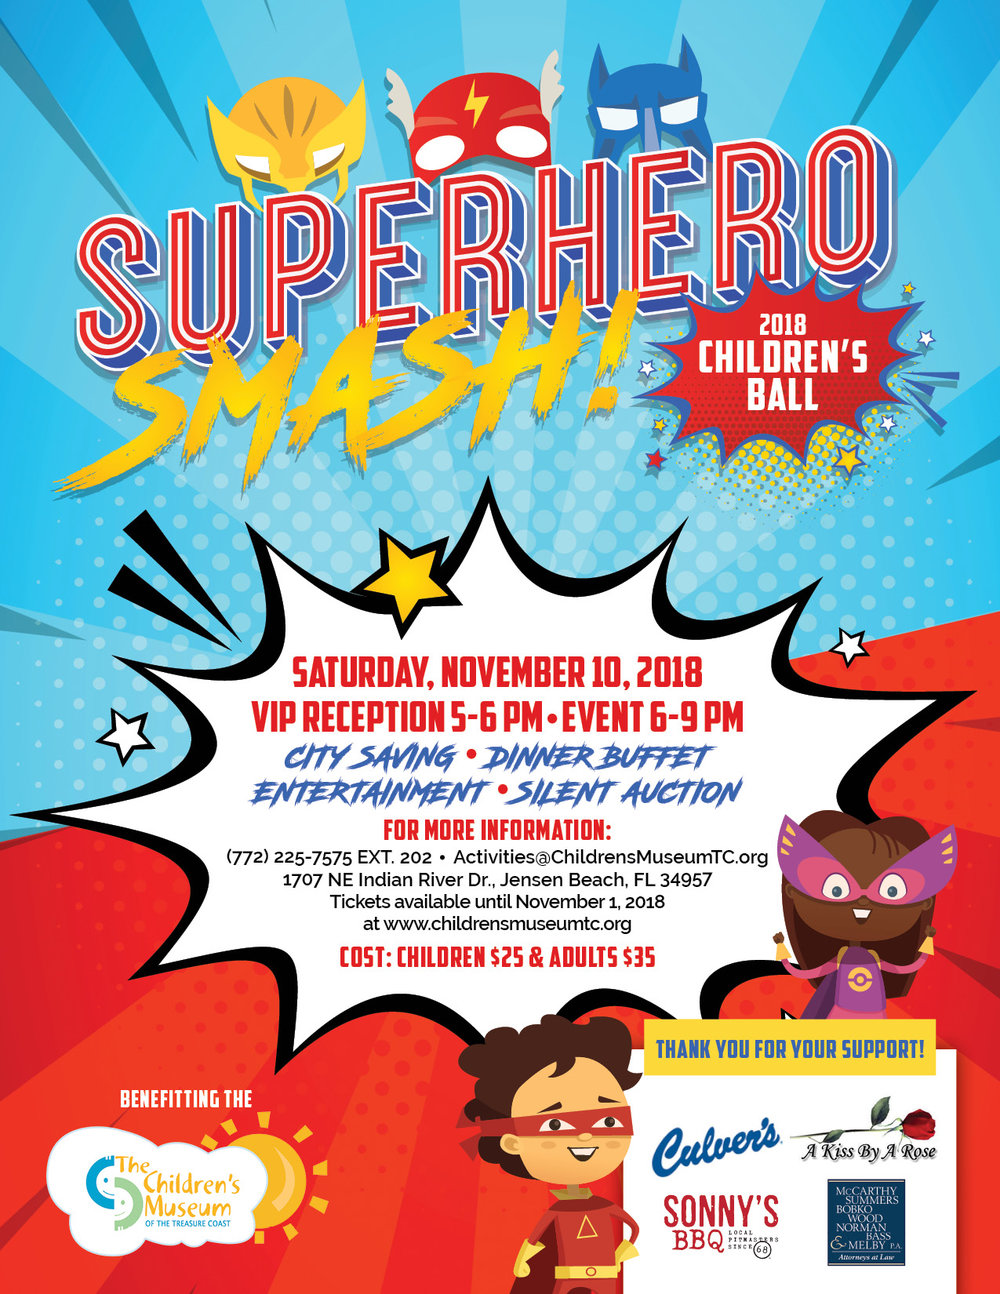 Superhero Smash Full Invite.jpg